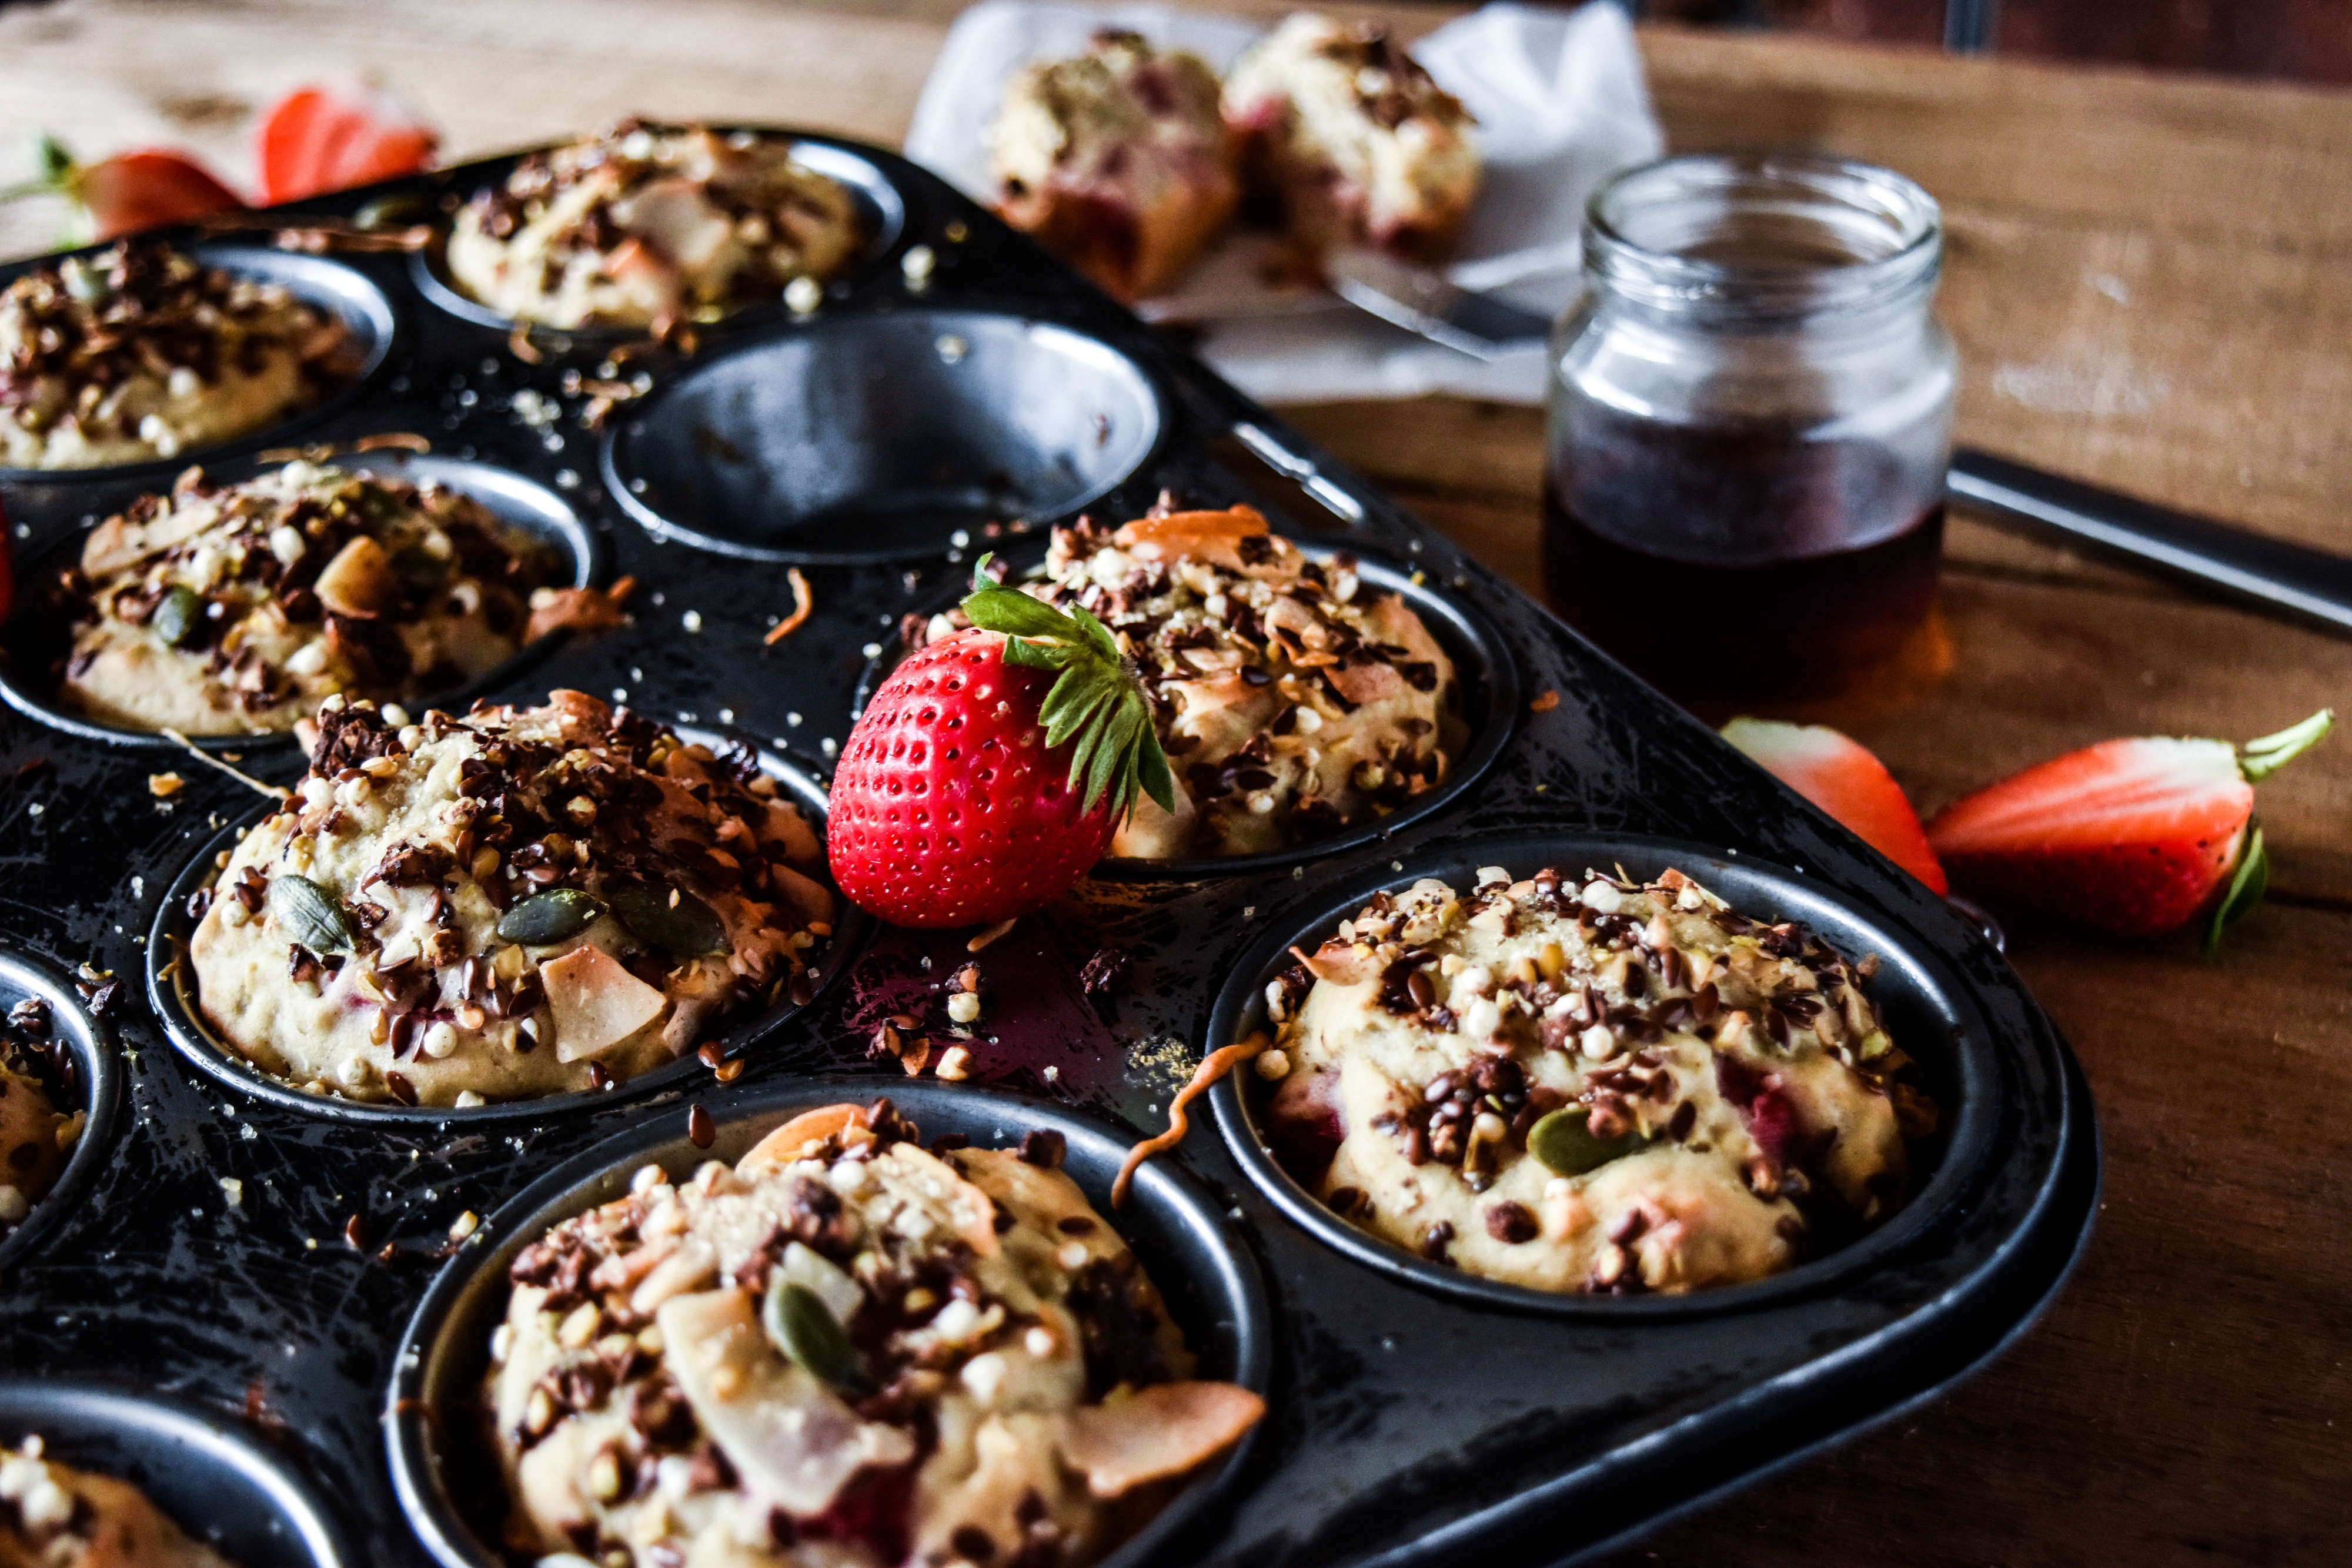 Healthy Gluten Free Apple and Berry Breakfast Muffins